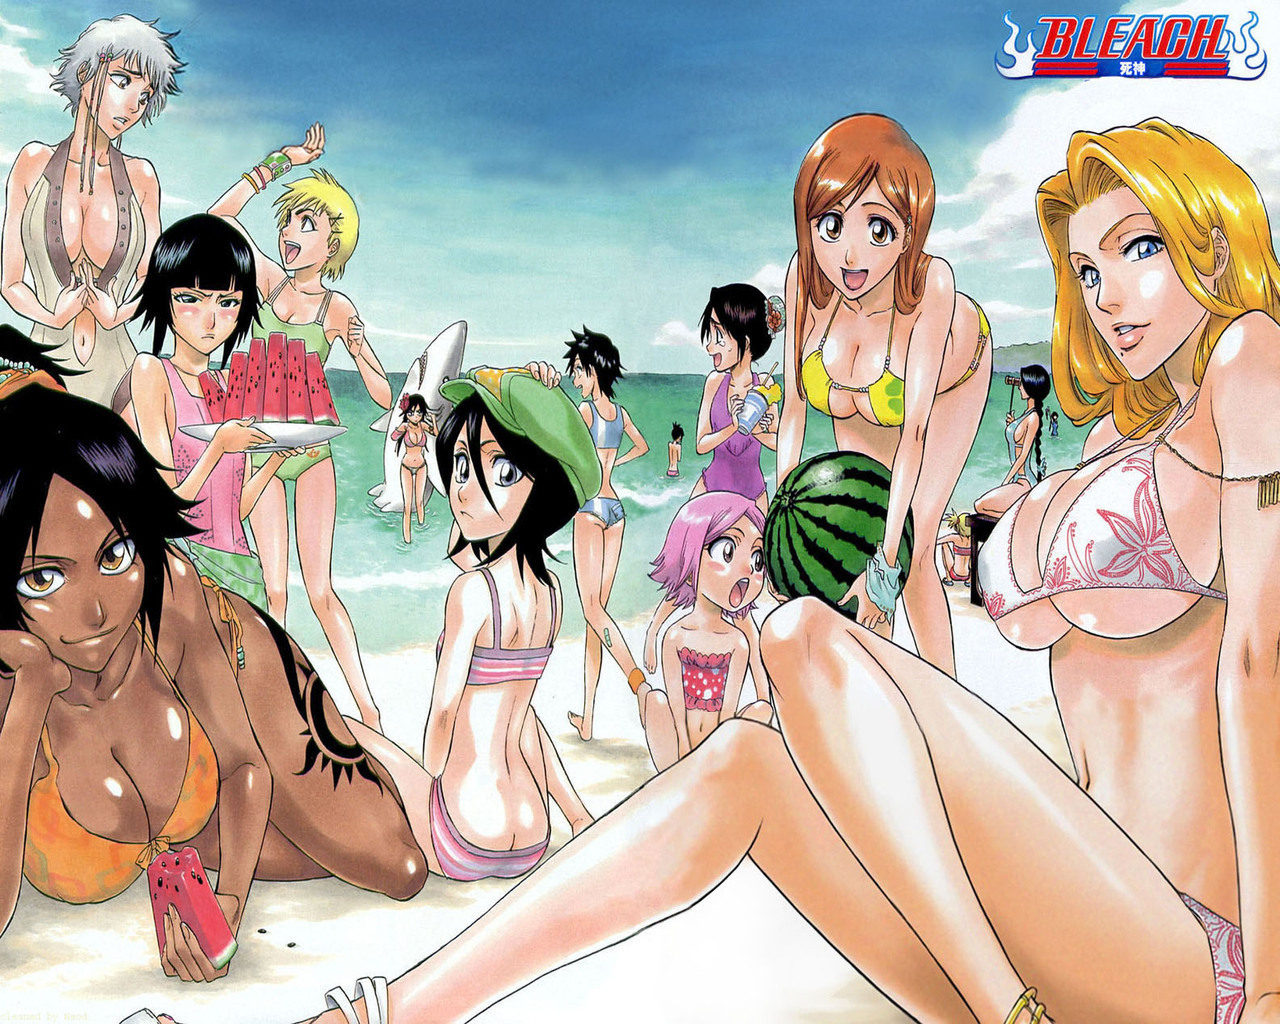 Bleach Girls at the de praia, praia